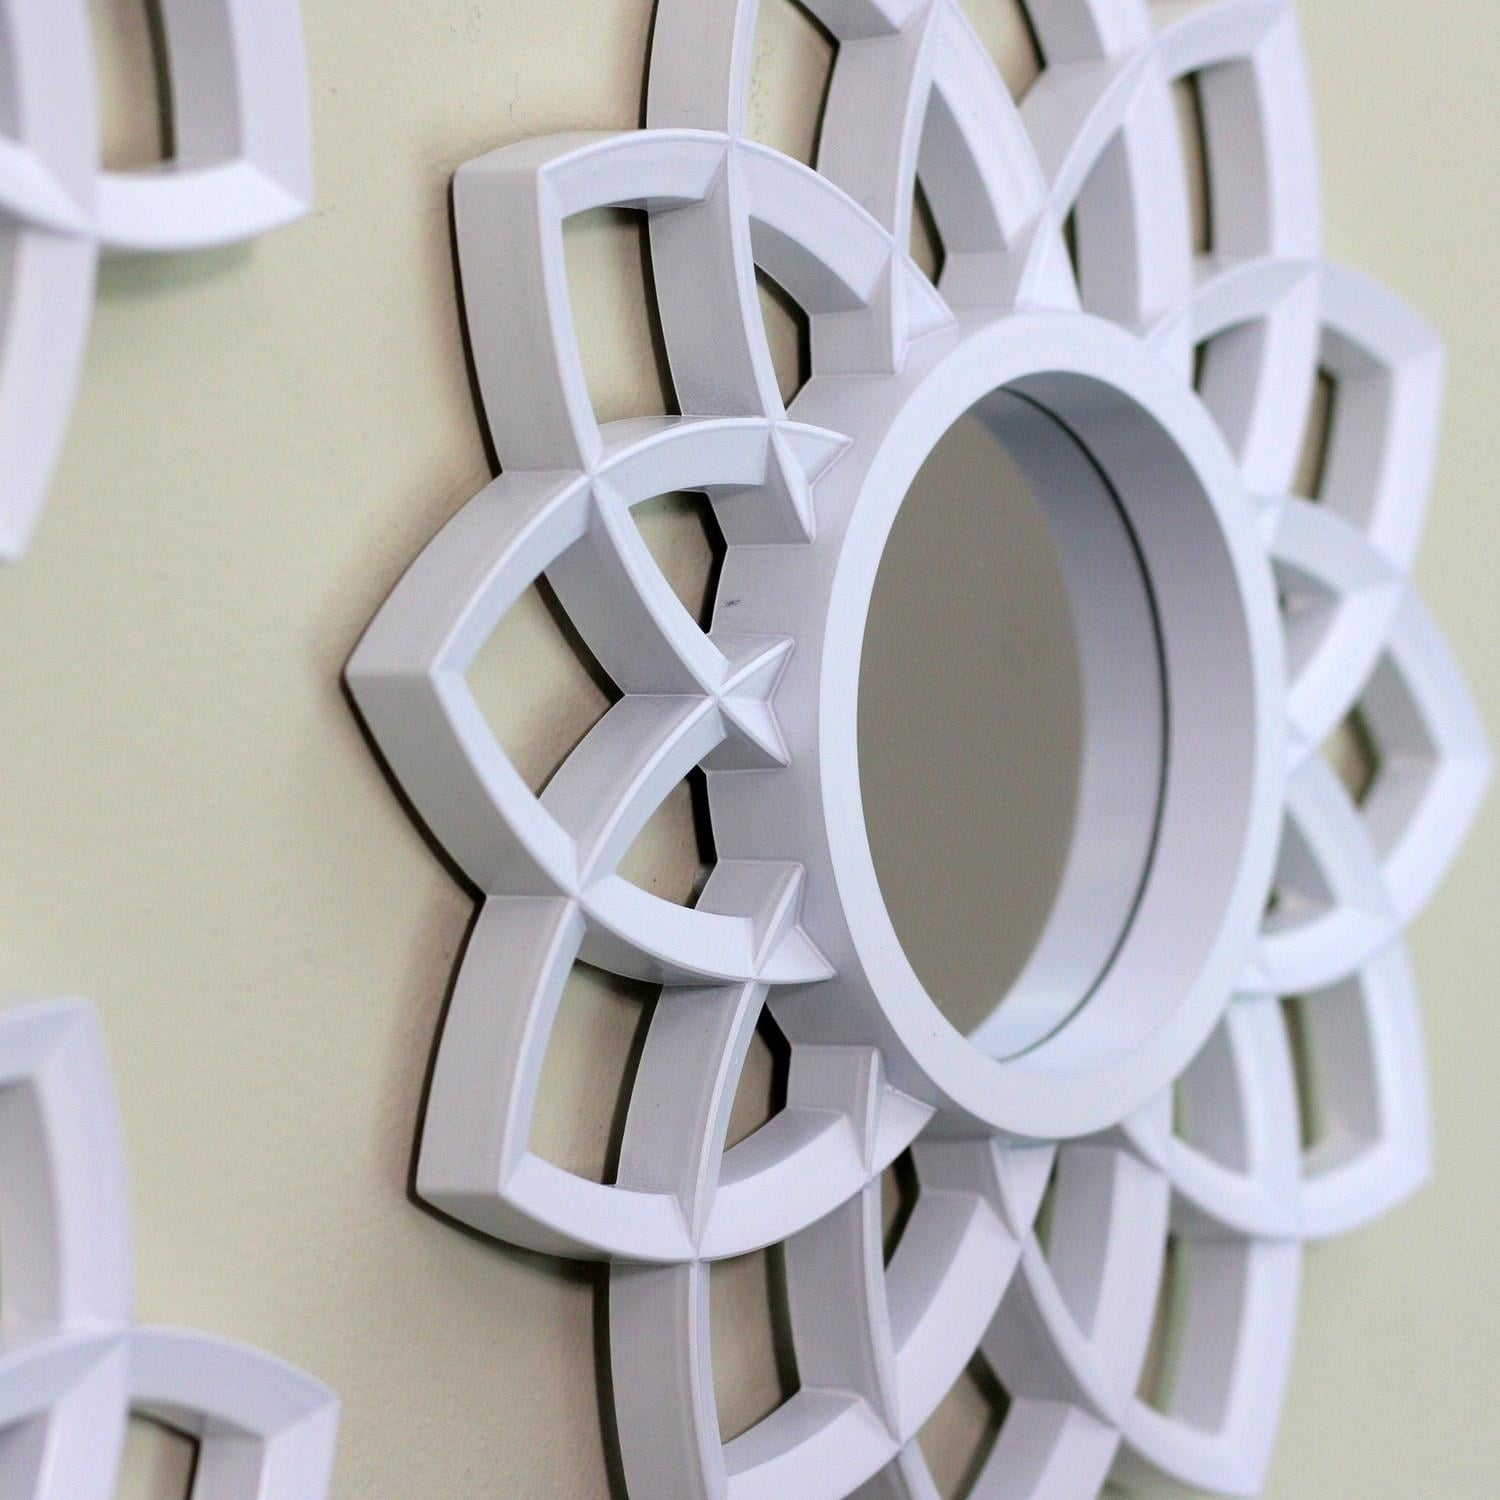 Set Of 3 Fl Arches Matte White Decorative Round Mirrors 9 5 Free Shipping On Orders Over 45 17958085